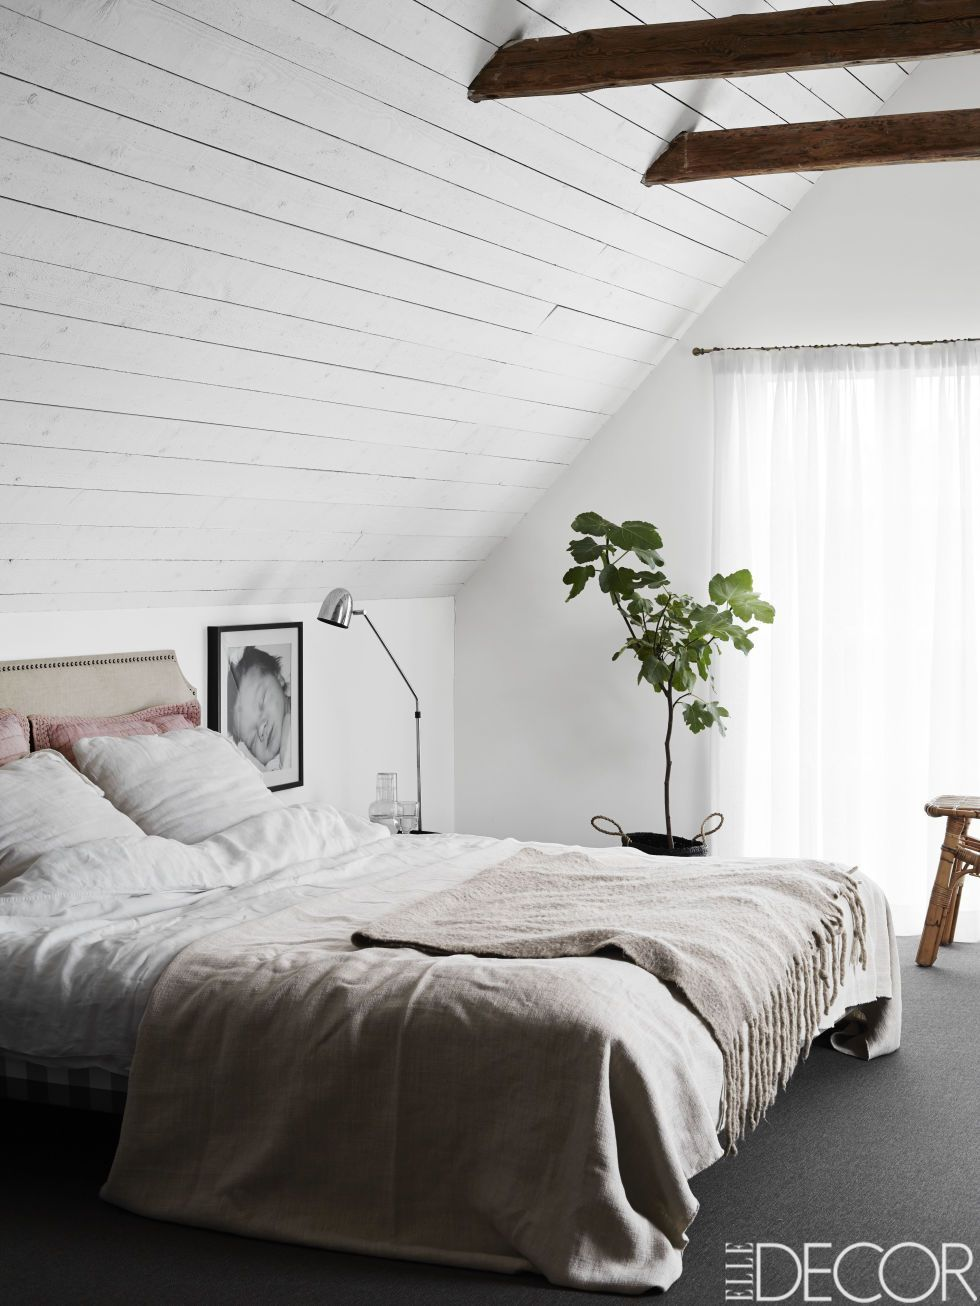 White washed attic bedroom